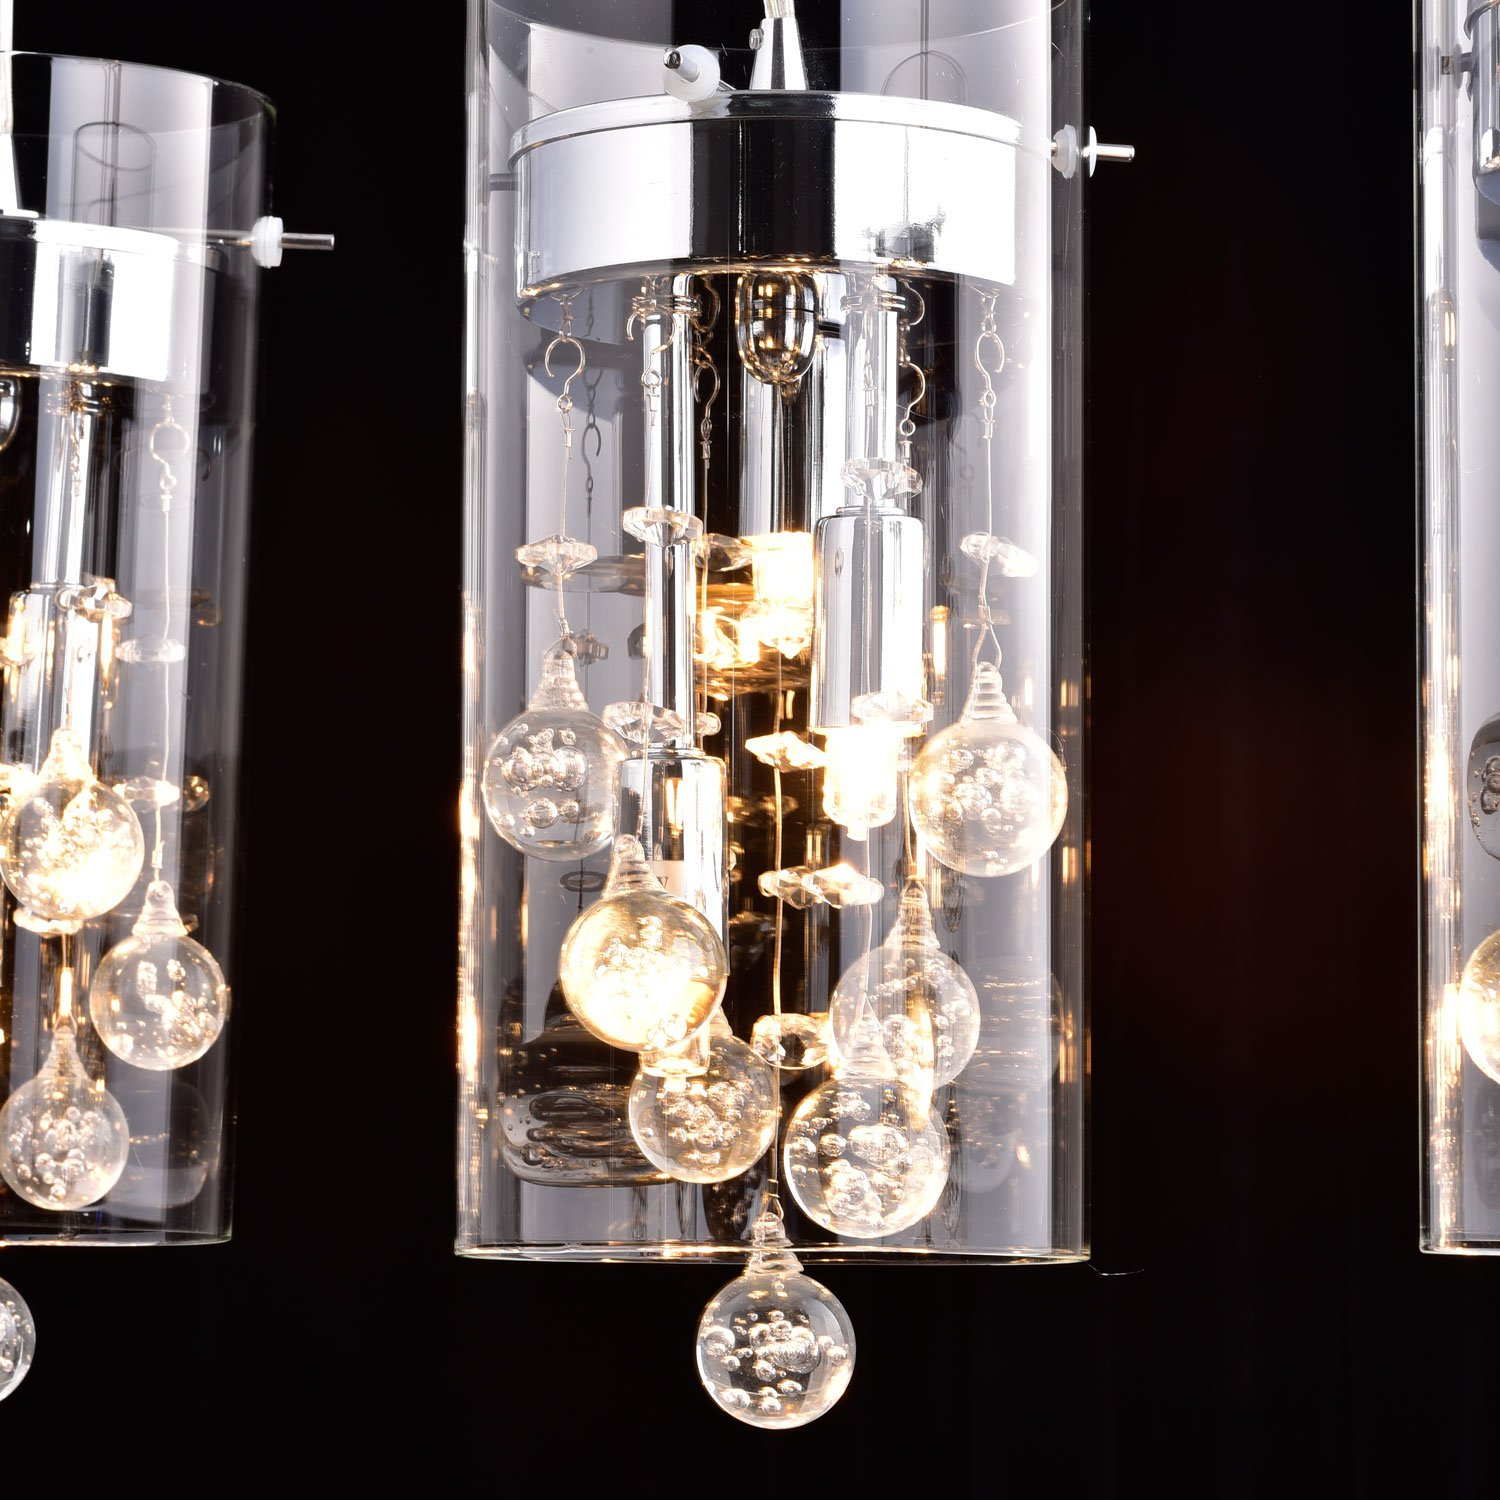 CLAXY Ecopower Lighting Glass & Crystal Pendant Lighting